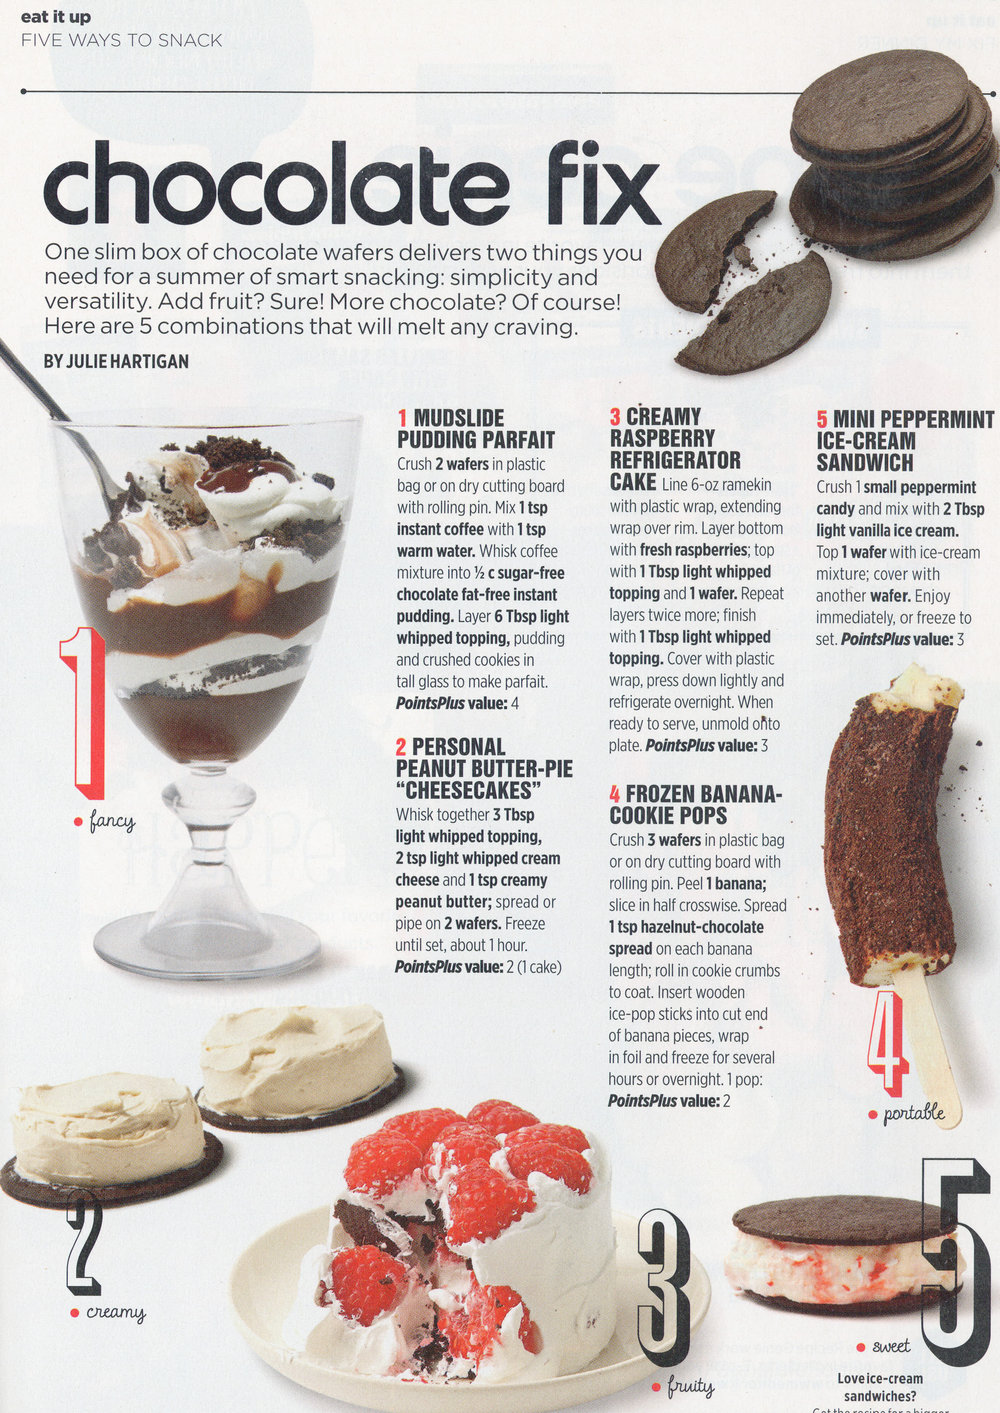 5 ways to snack - chocolate fix.jpg